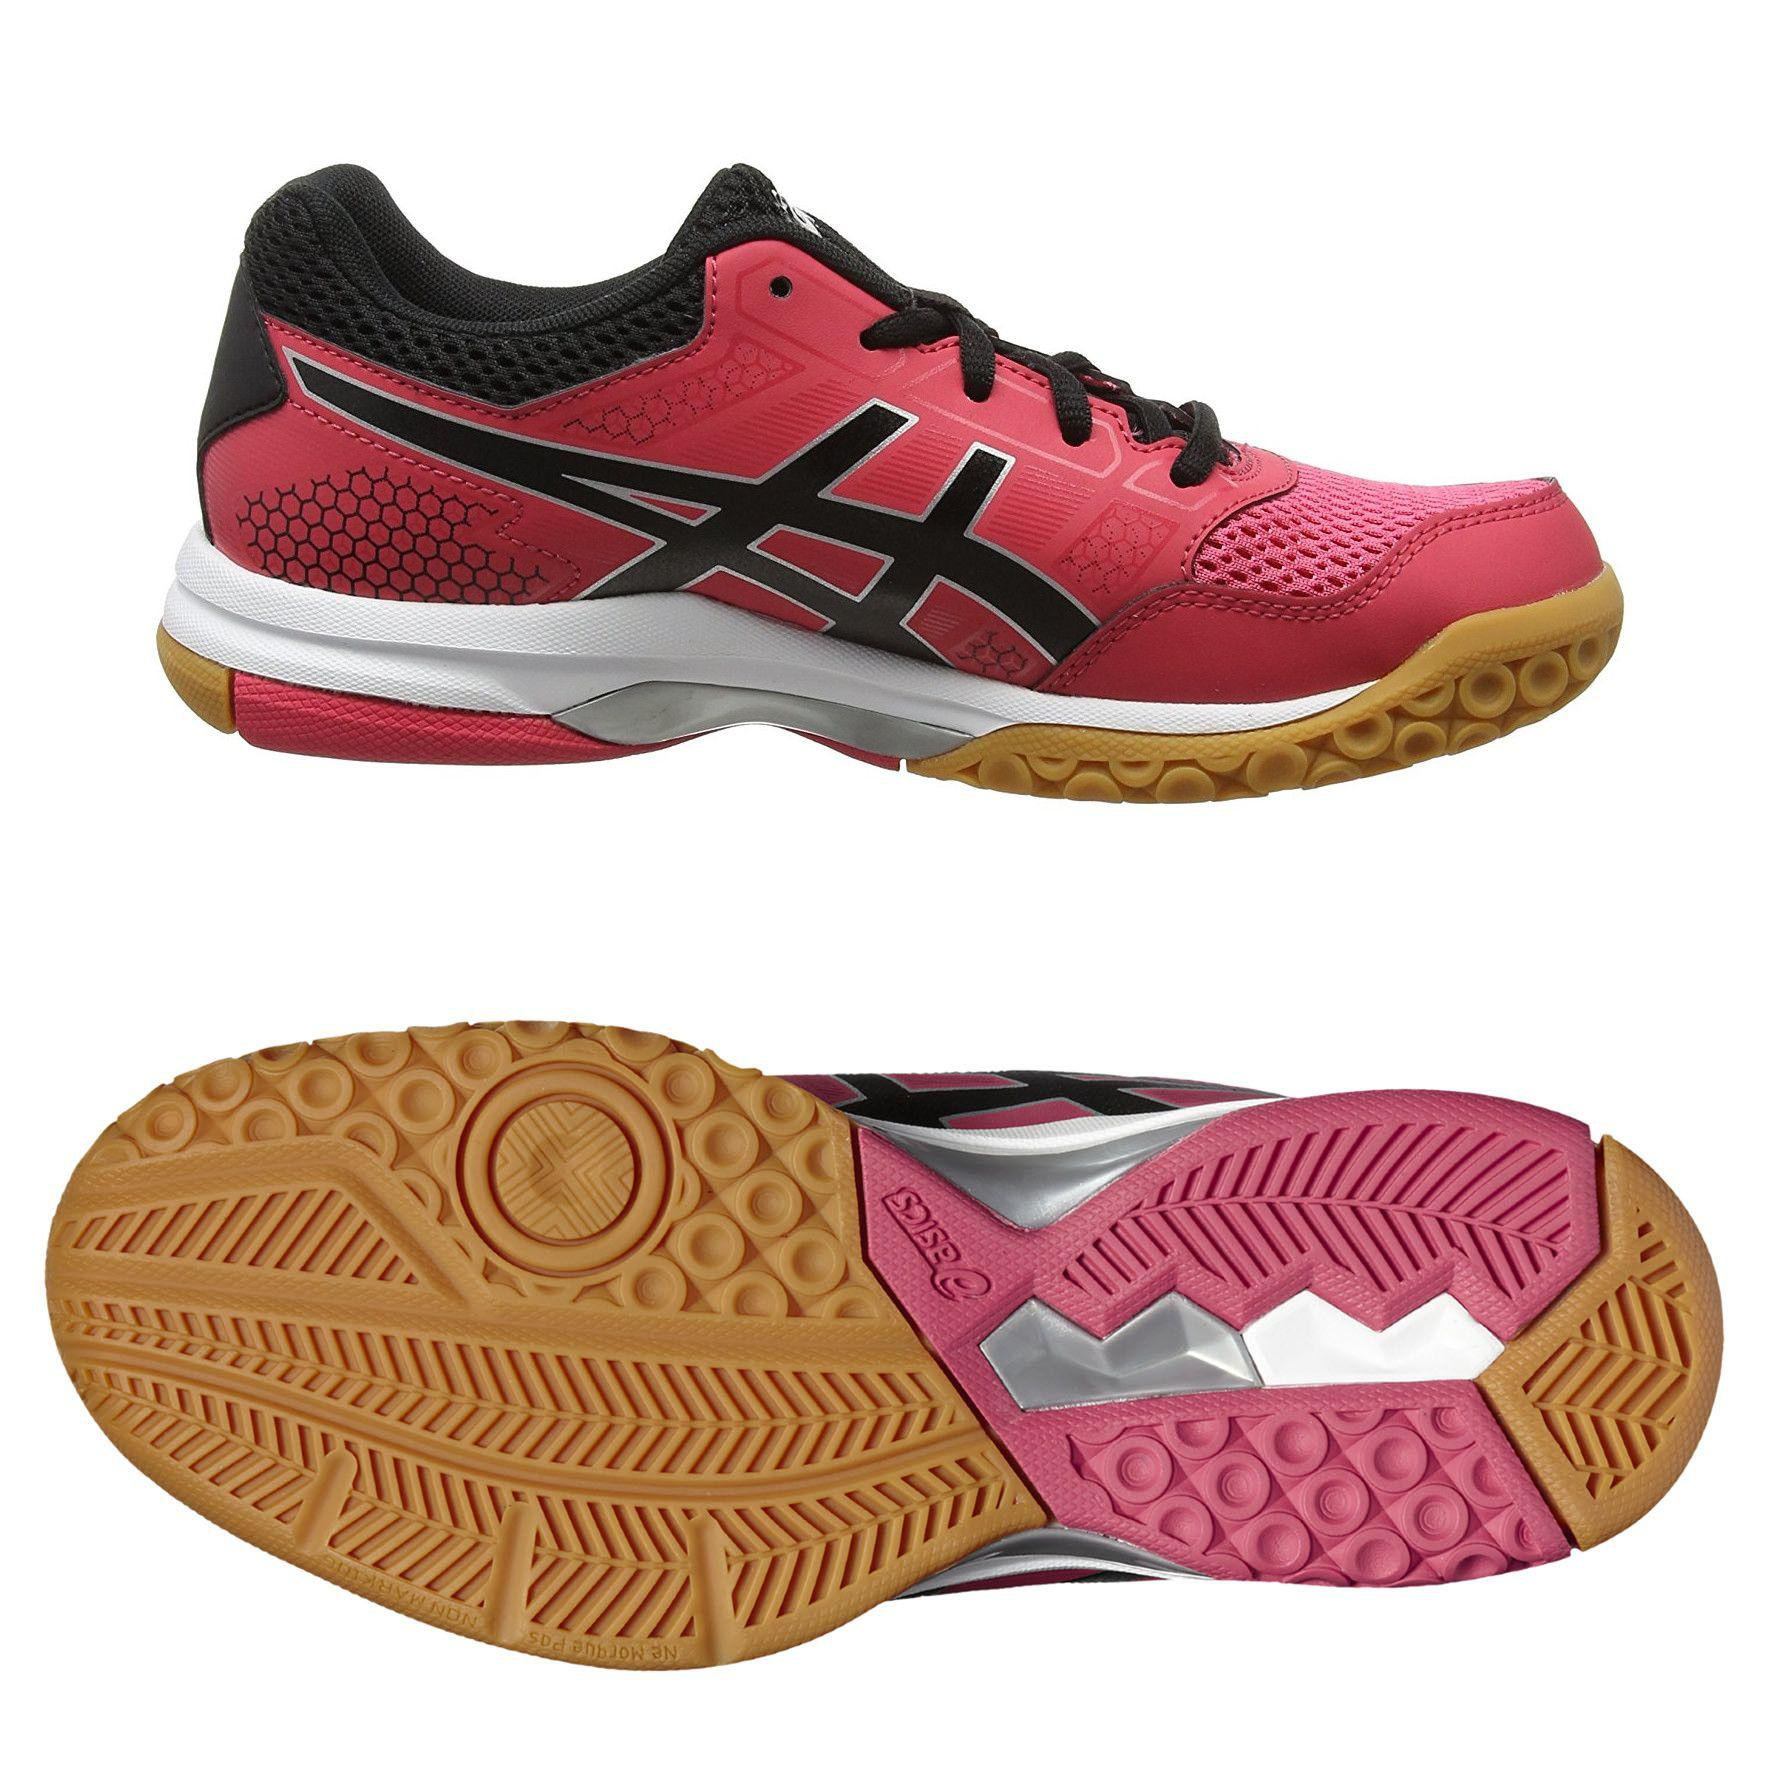 5bc0fcb17437 Asics Gel-Rocket 8 Women Indoor Court Shoes - Just Rackets